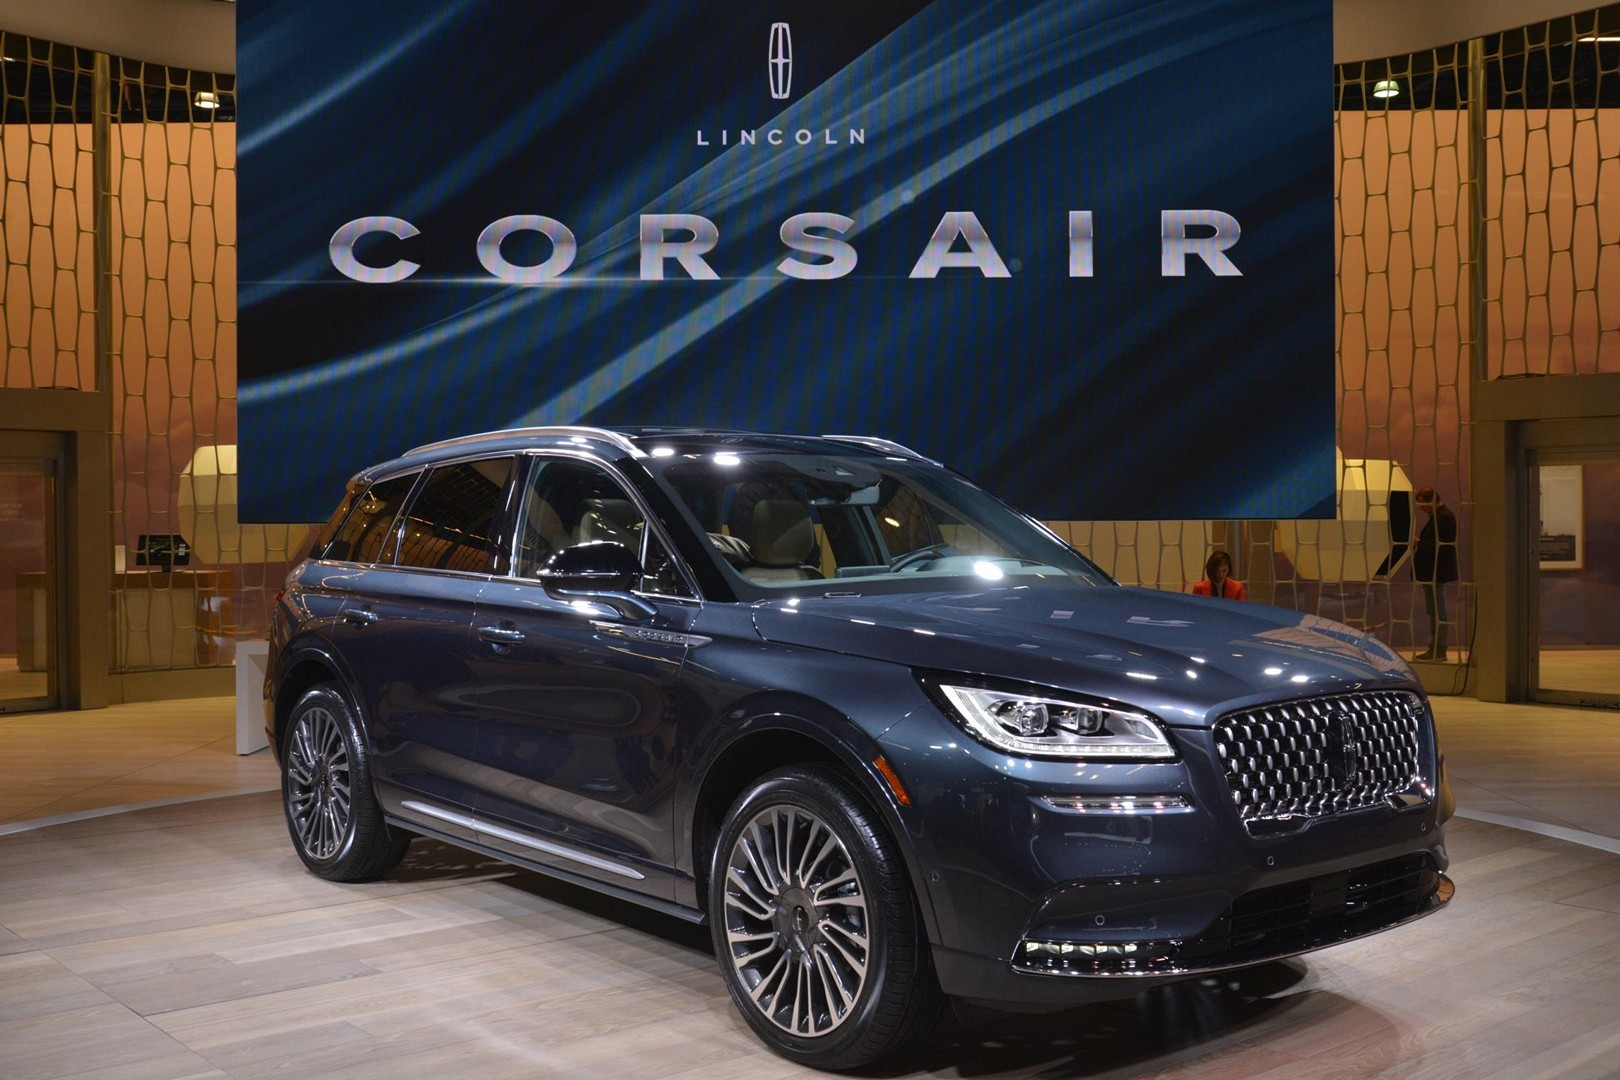 2020 Corsair Debuts As Lincoln S Smallest Suv Shares New Ford